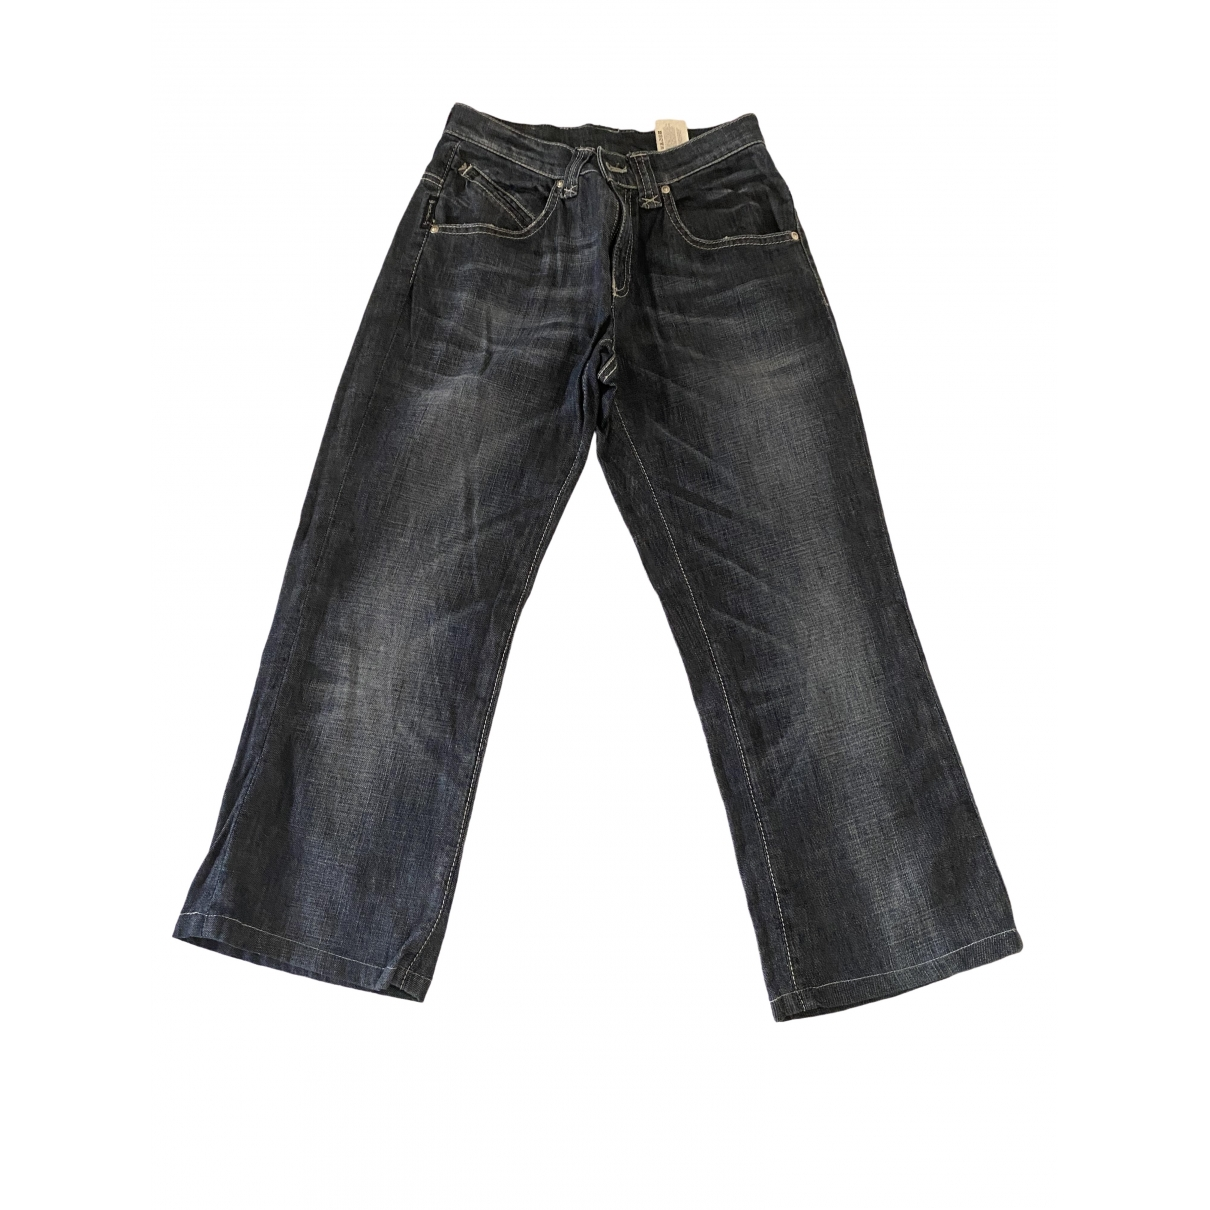 Armani Jeans \N Blue Denim - Jeans Trousers for Women S International